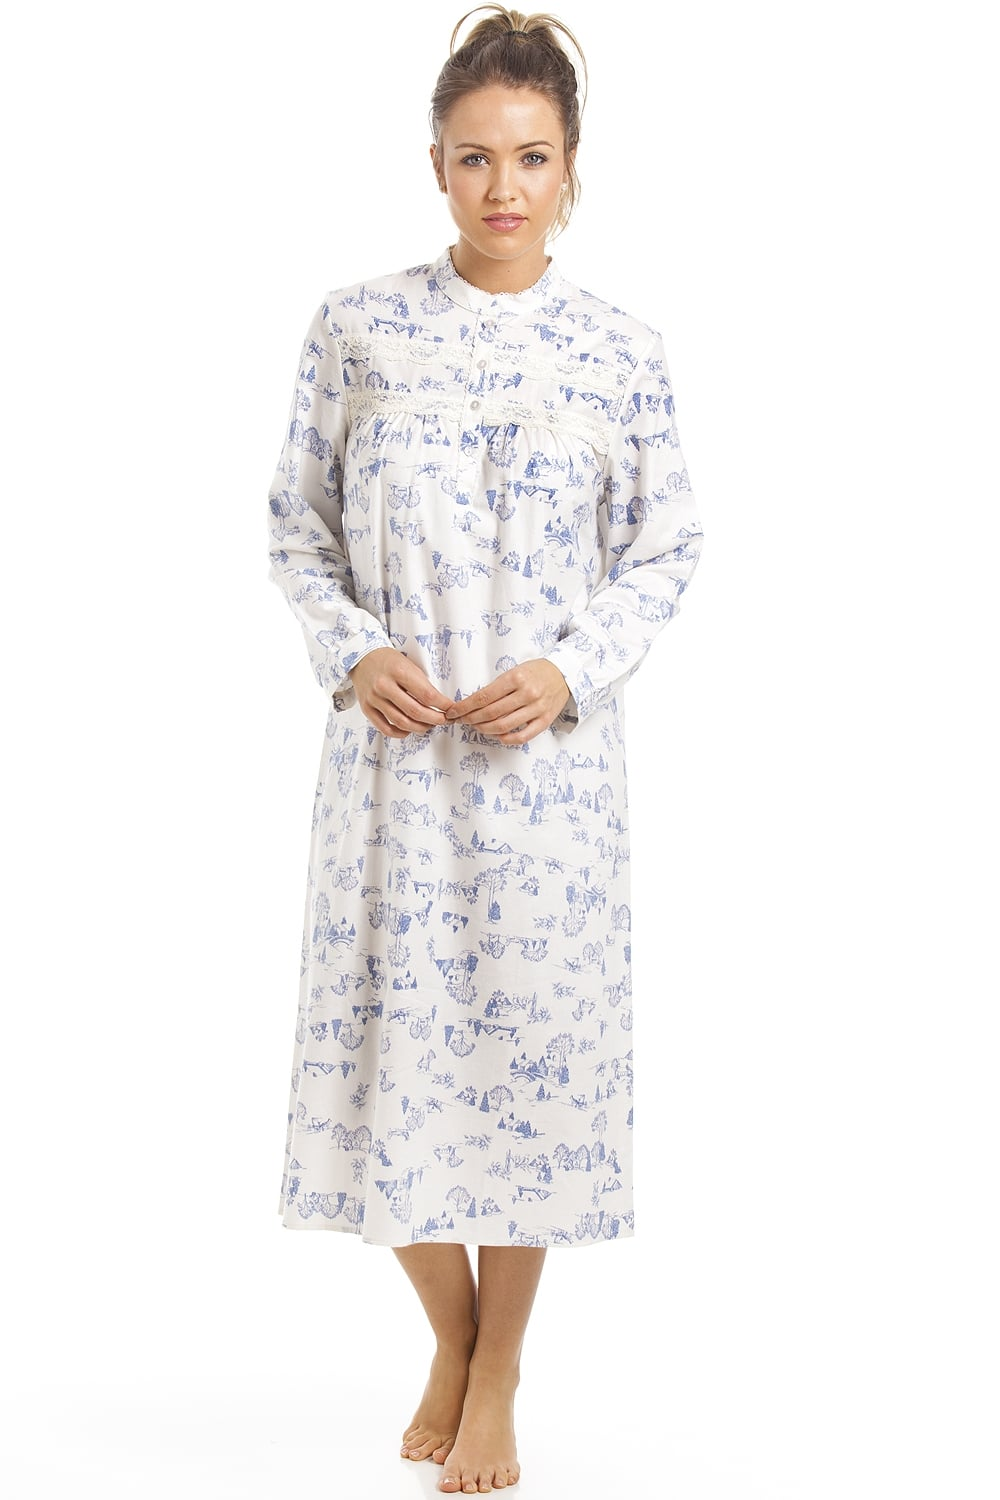 c8a5096cef0d Camille Classic Blue Country Cottage Print Brushed Polycotton Nightdress